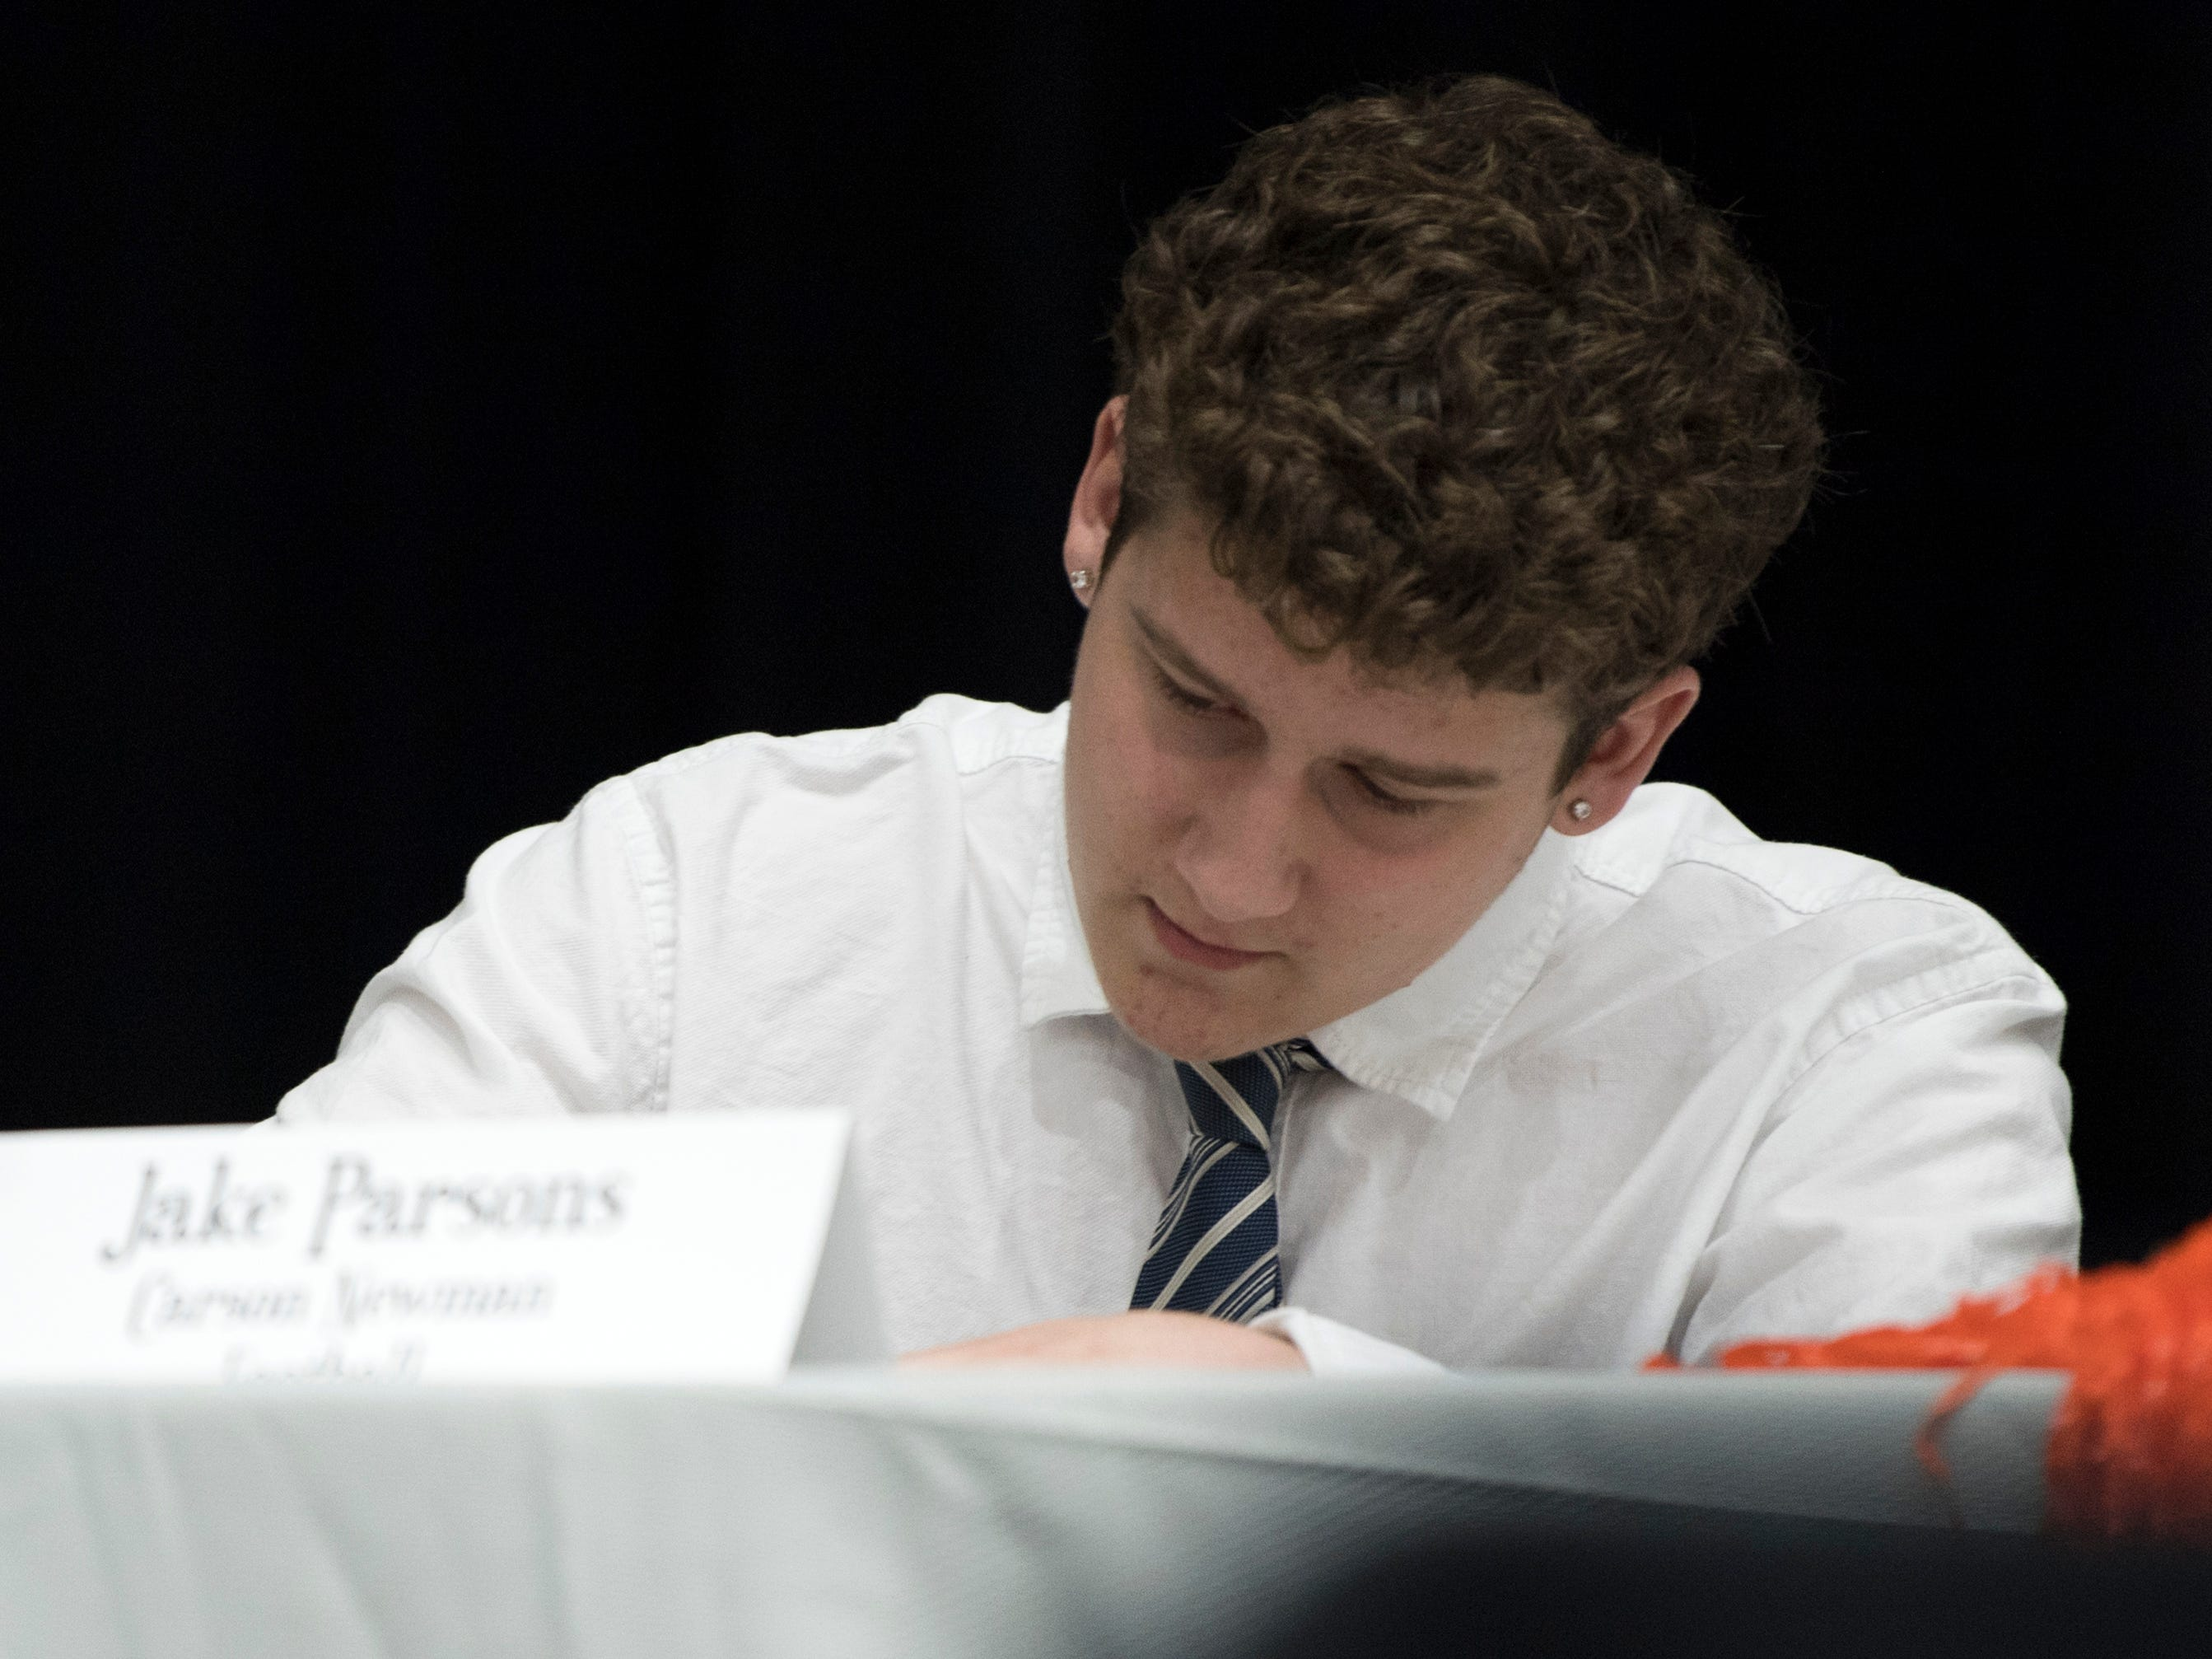 Farragut football player Jake Parsons signs with Carson-Newman University during a National Signing Day event at Farragut High's auditorium on Wednesday, February 6, 2019.